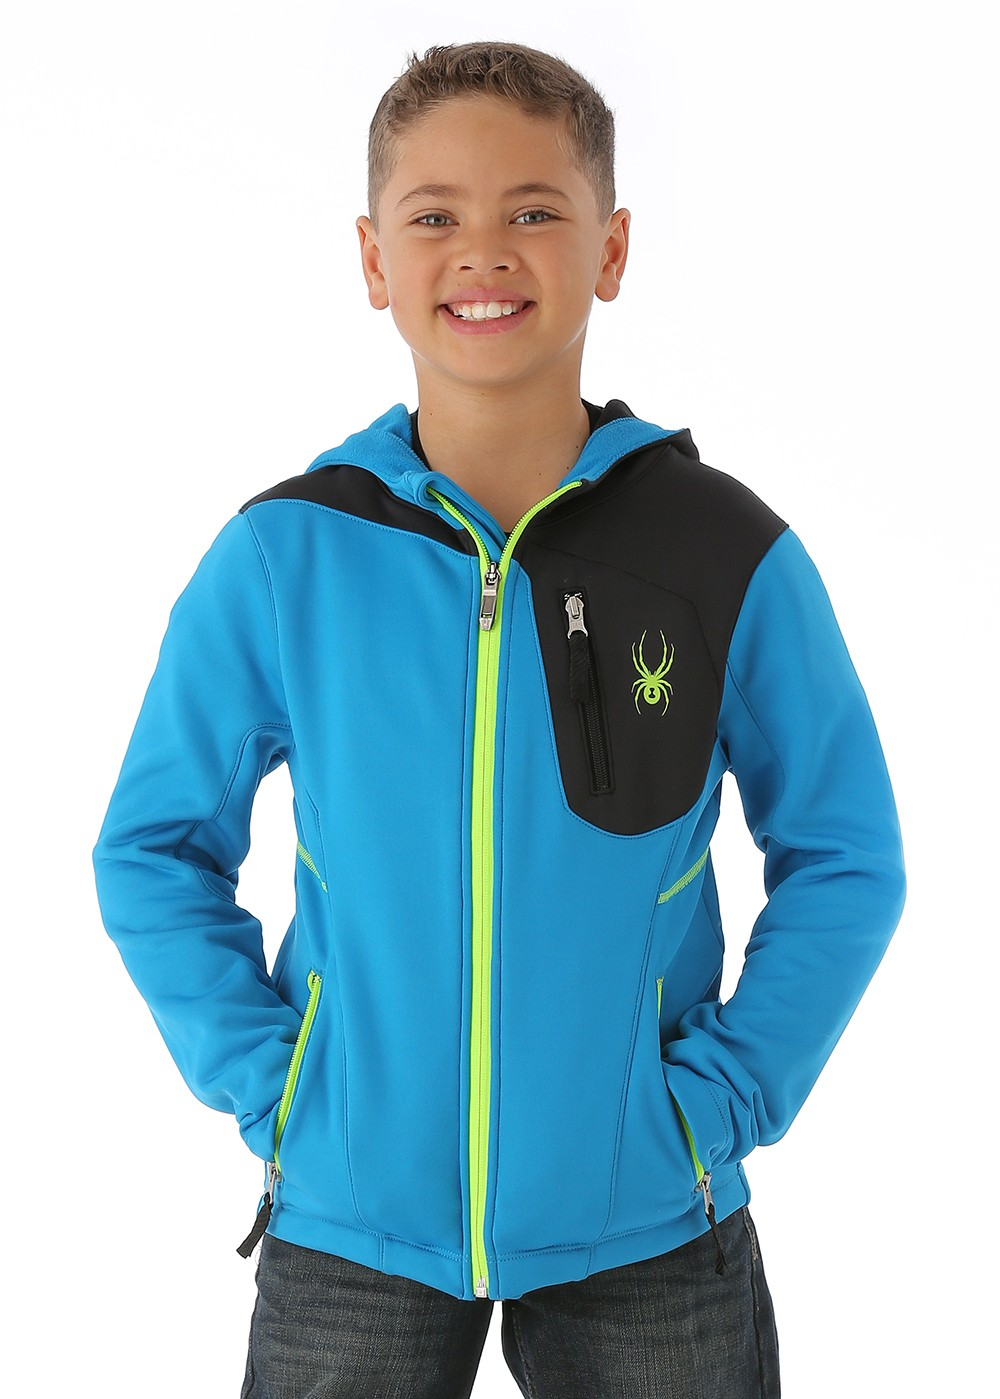 Kids Fleece Jackets (Ages 6-16) Spyder Brands